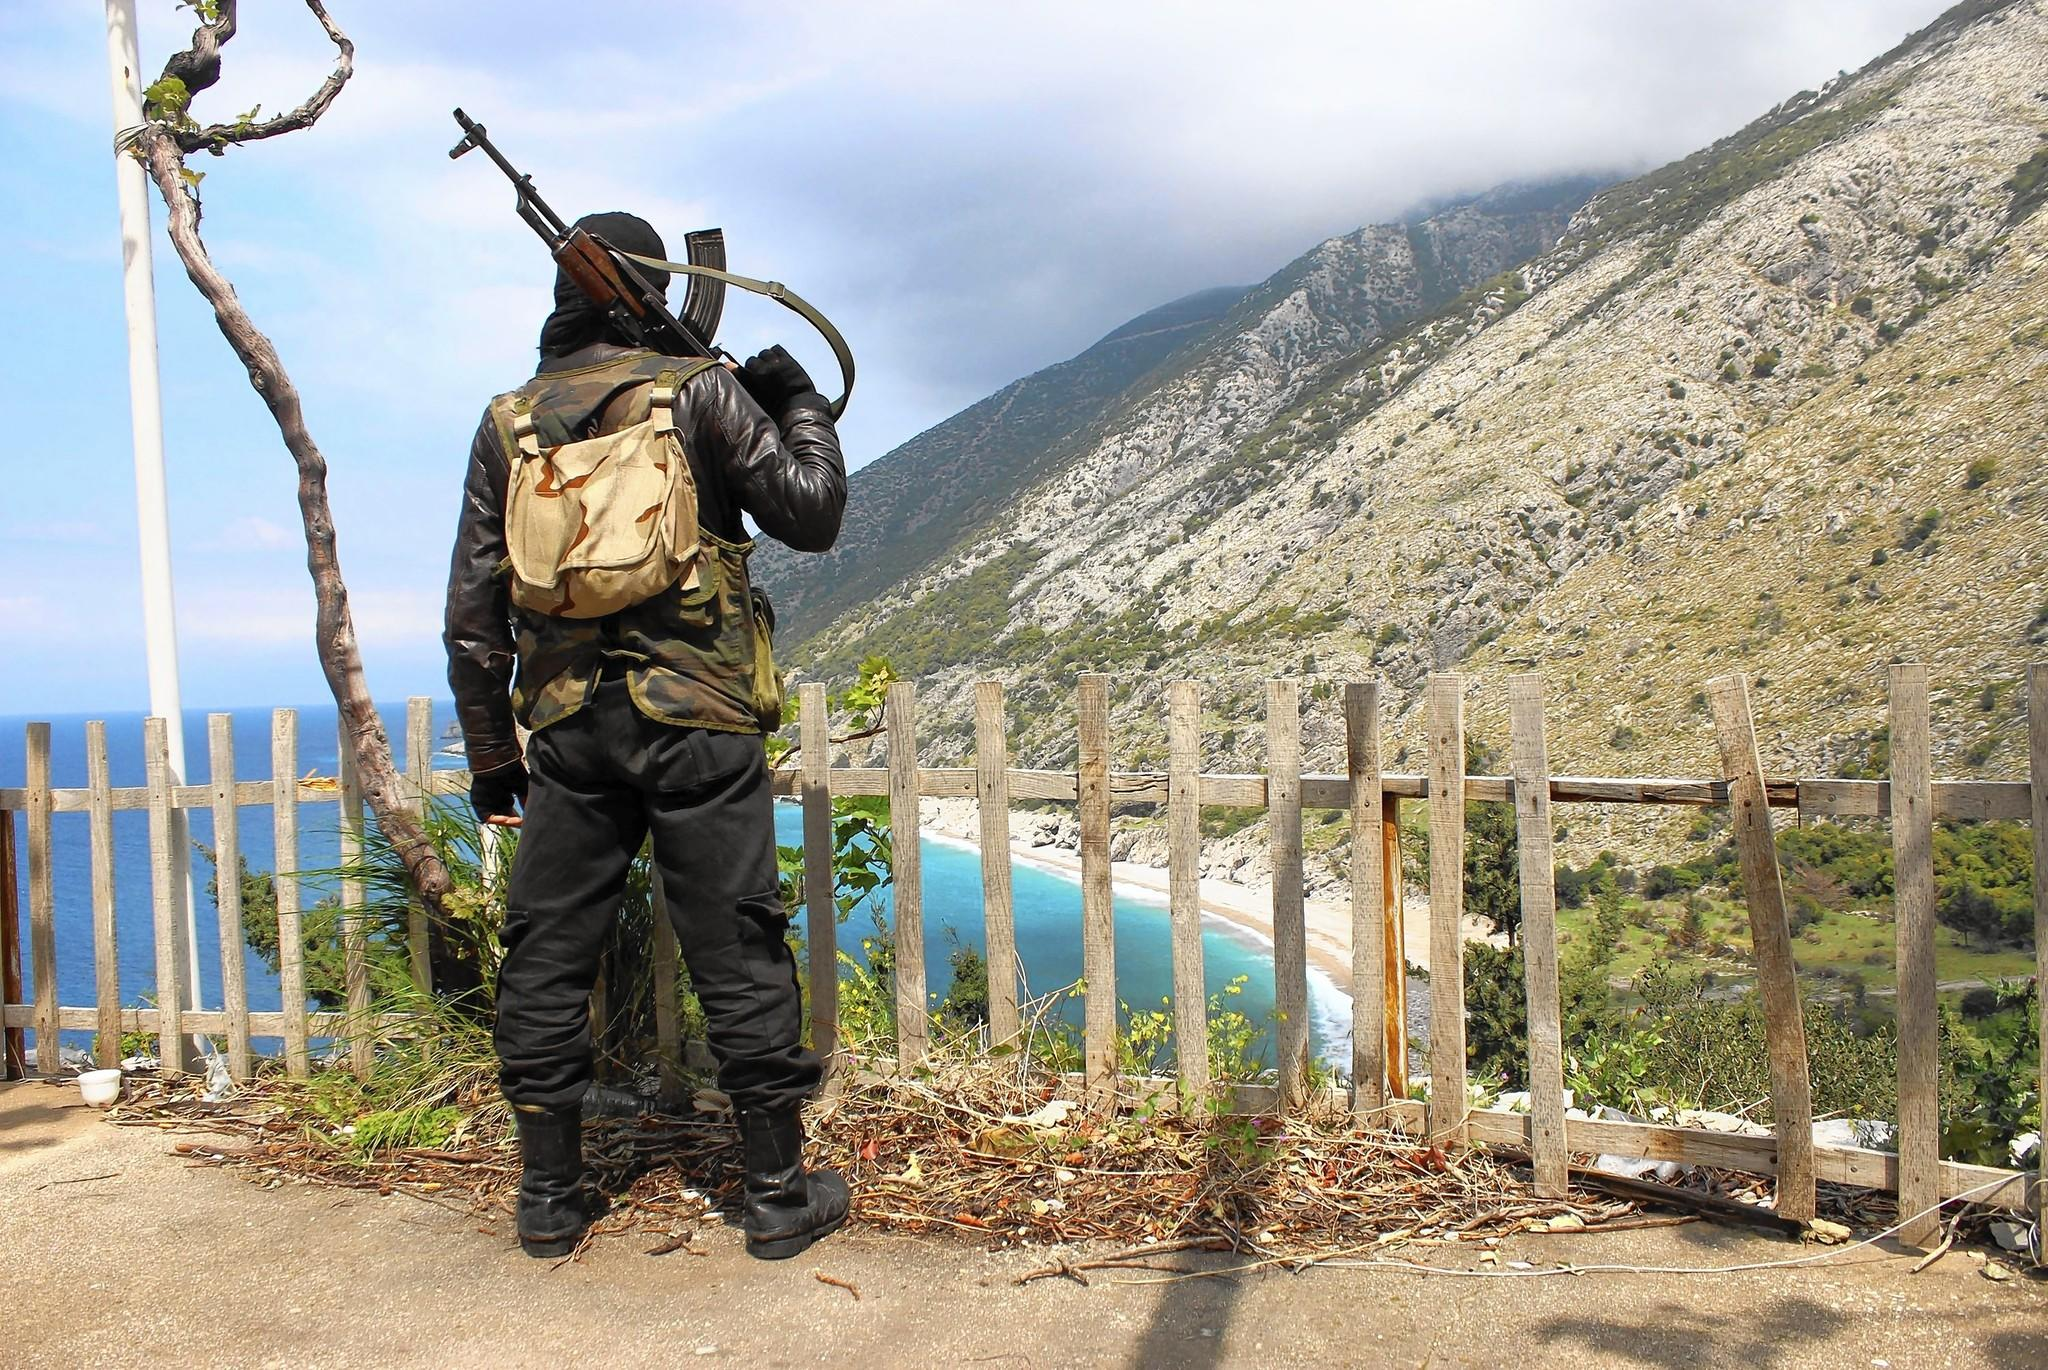 A rebel fighter is seen on a ridge, reportedly in Kasab, Syria, overlooking the Mediterranean Sea. About 2,500 residents, most of them ethnic Armenians, fled Kasab recently as Islamist rebels advanced.